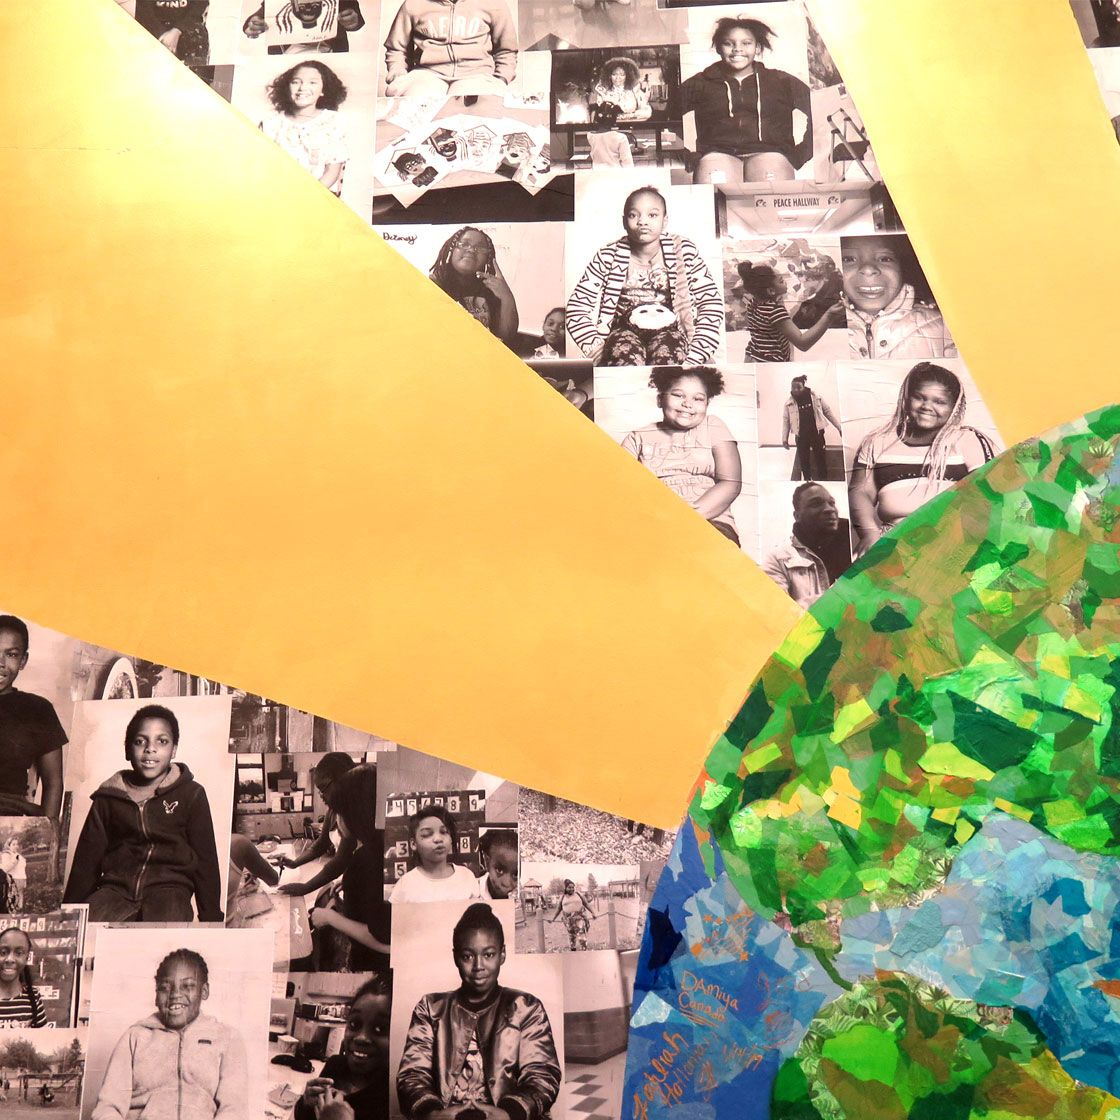 Closeup of a multimedia mural of an earth with sun rays coming out of it, collaged with photos of people